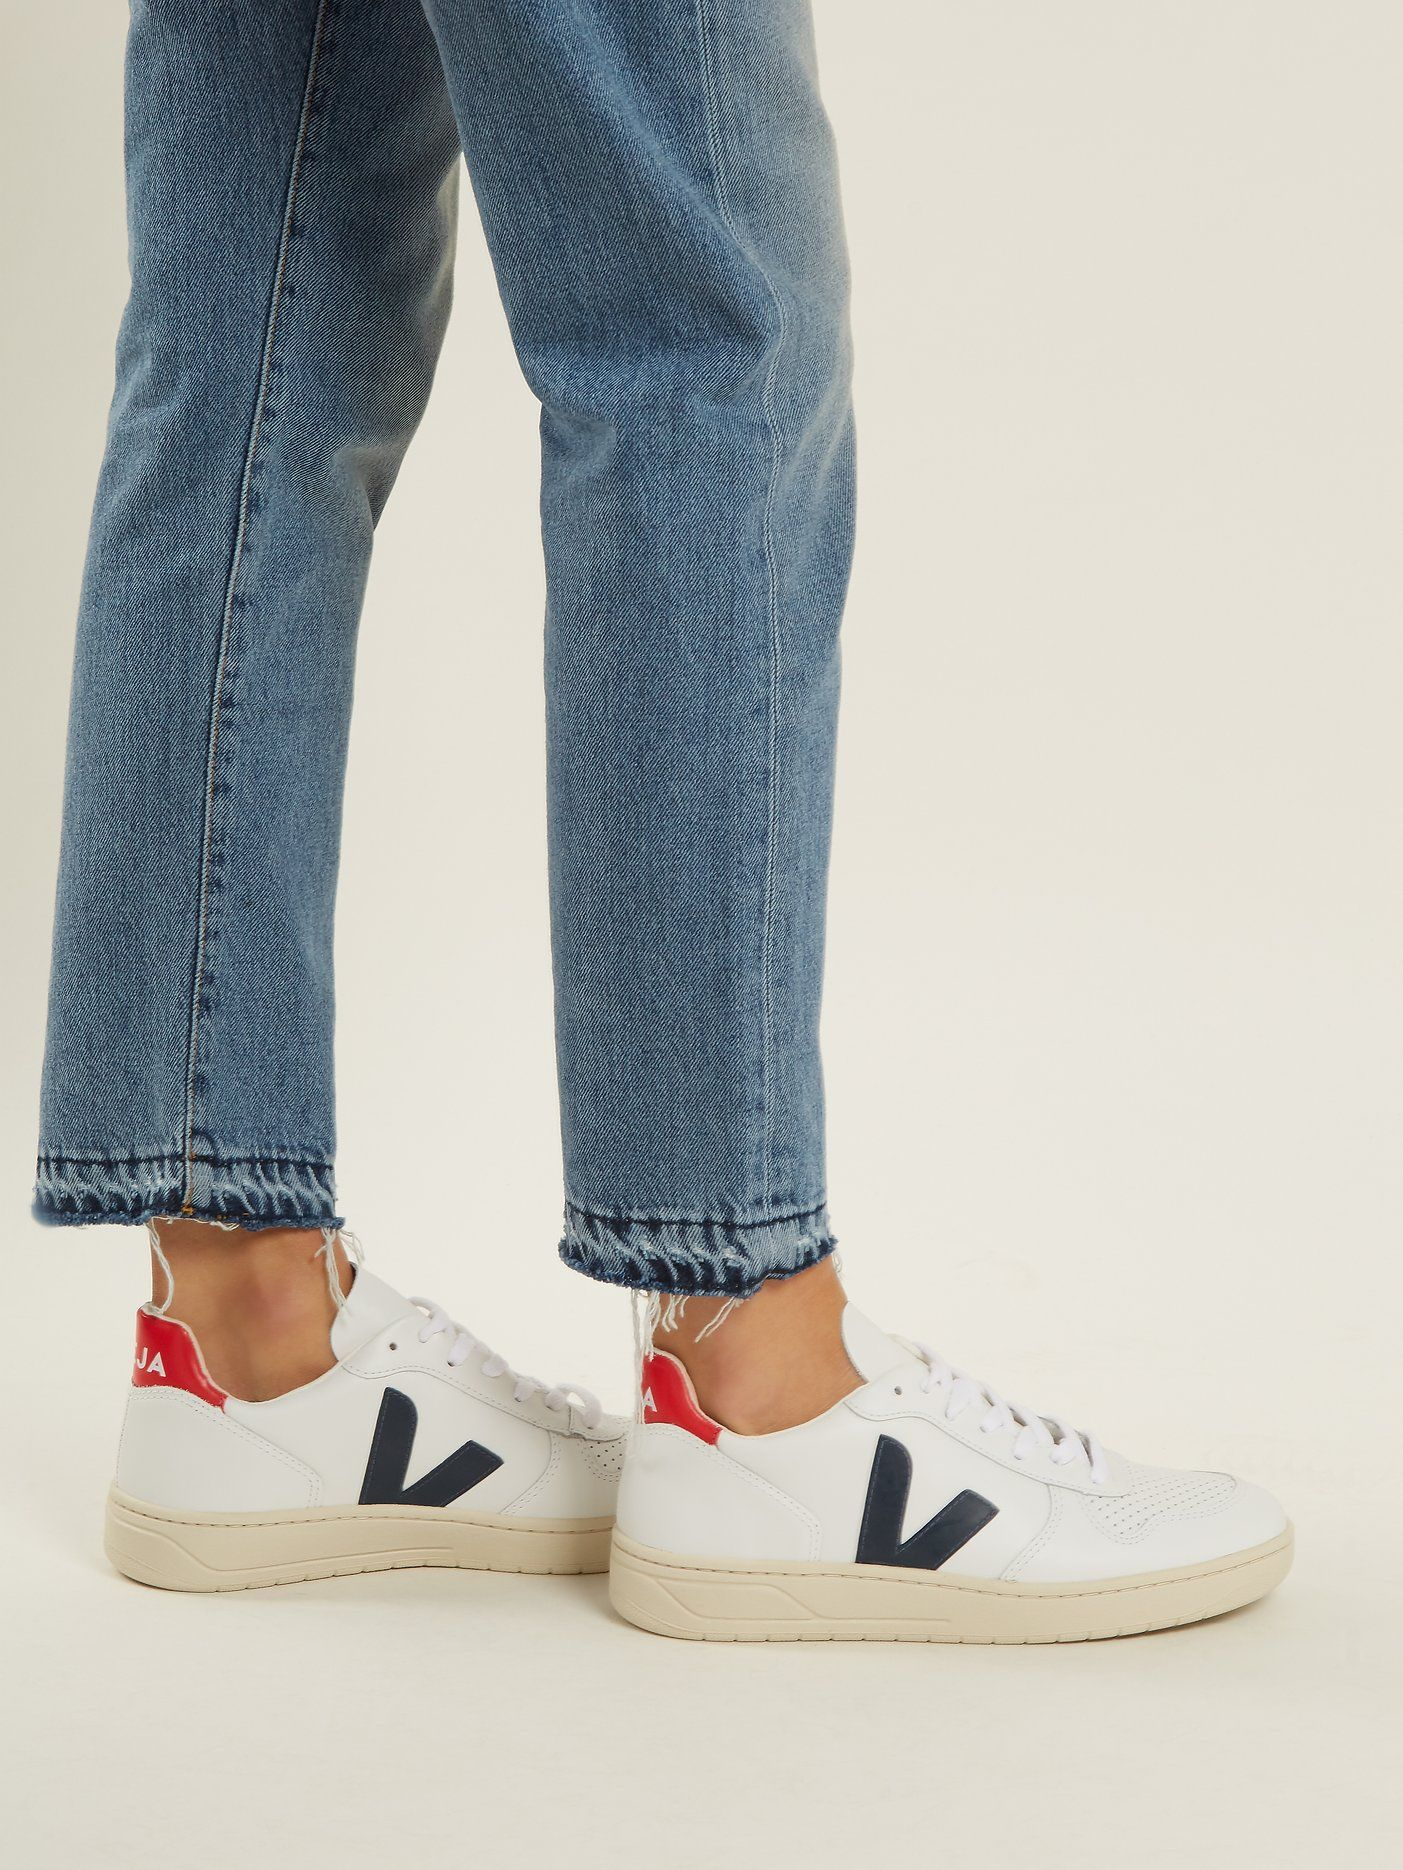 807feafc86367 Click here to buy Veja V-10 low-top leather trainers at MATCHESFASHION.COM